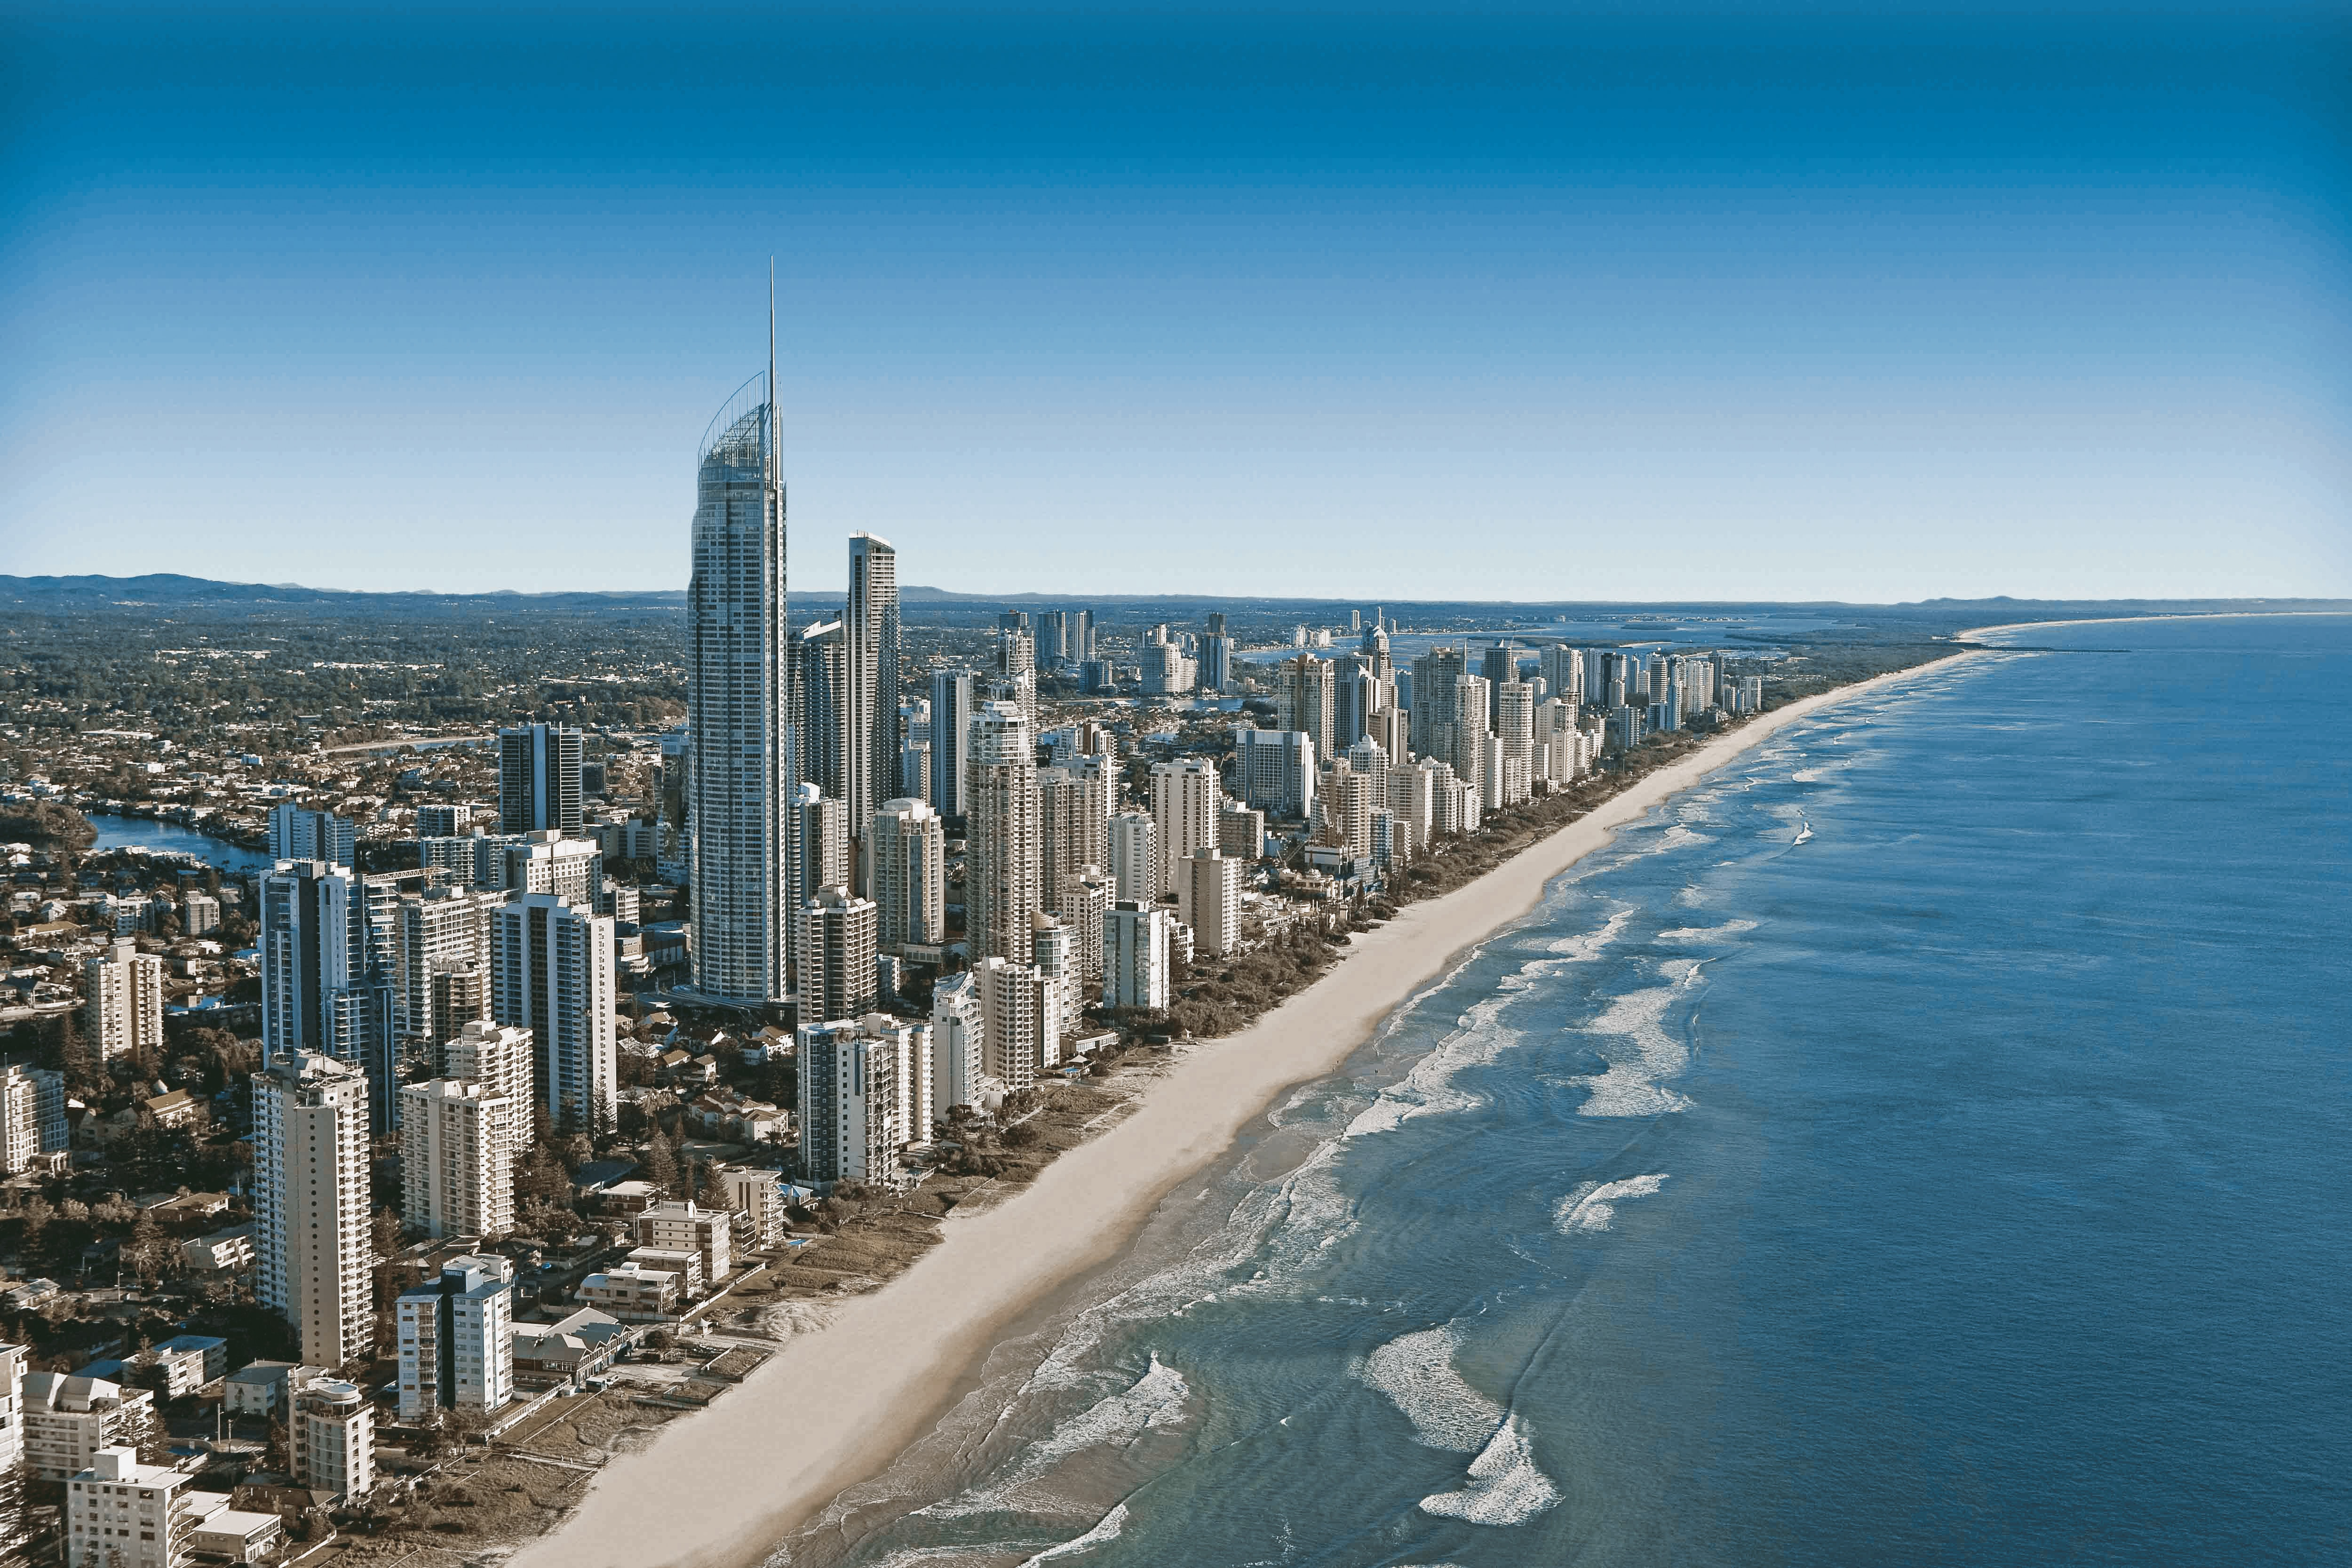 A long sandy coast with high-rises and skyscrapers